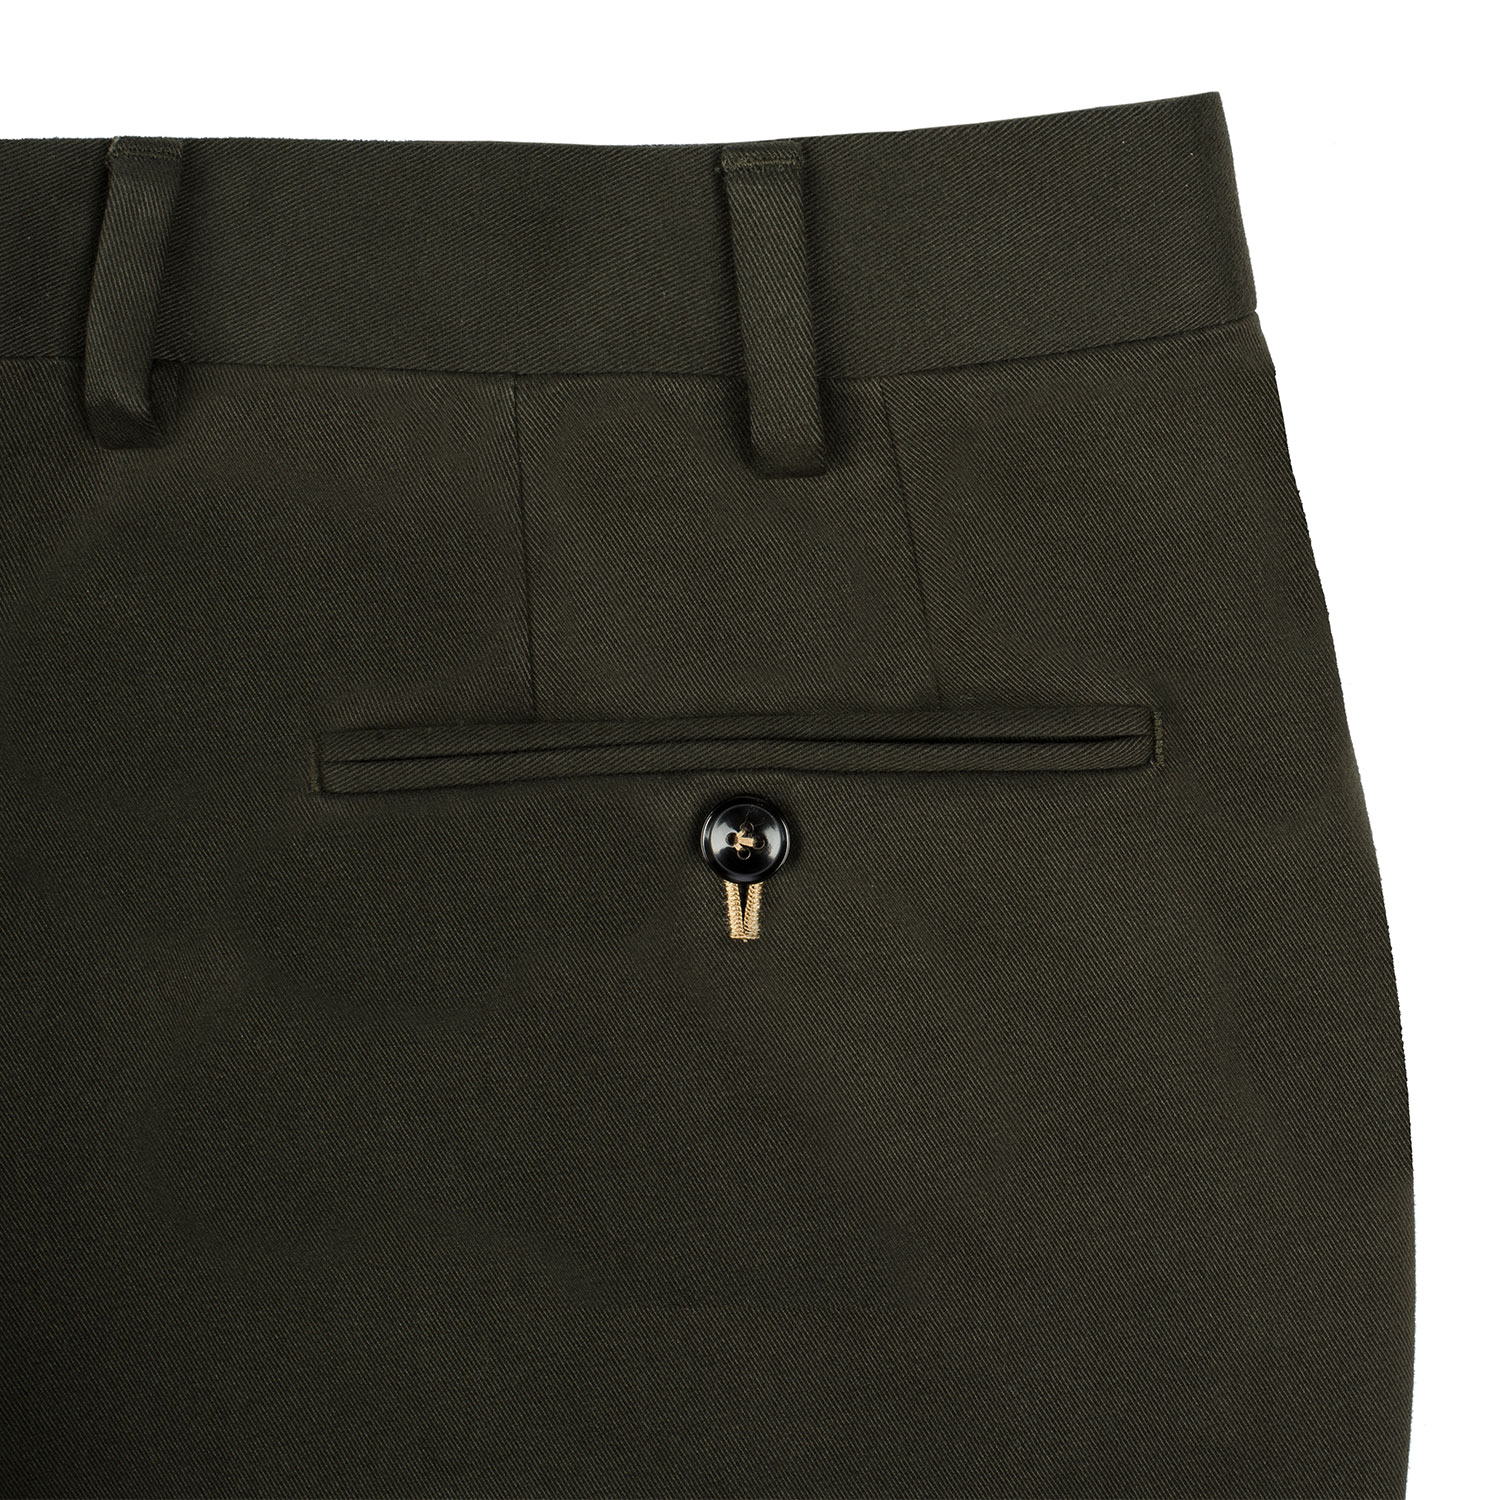 Back Pocket with Reinforced Piping stitching